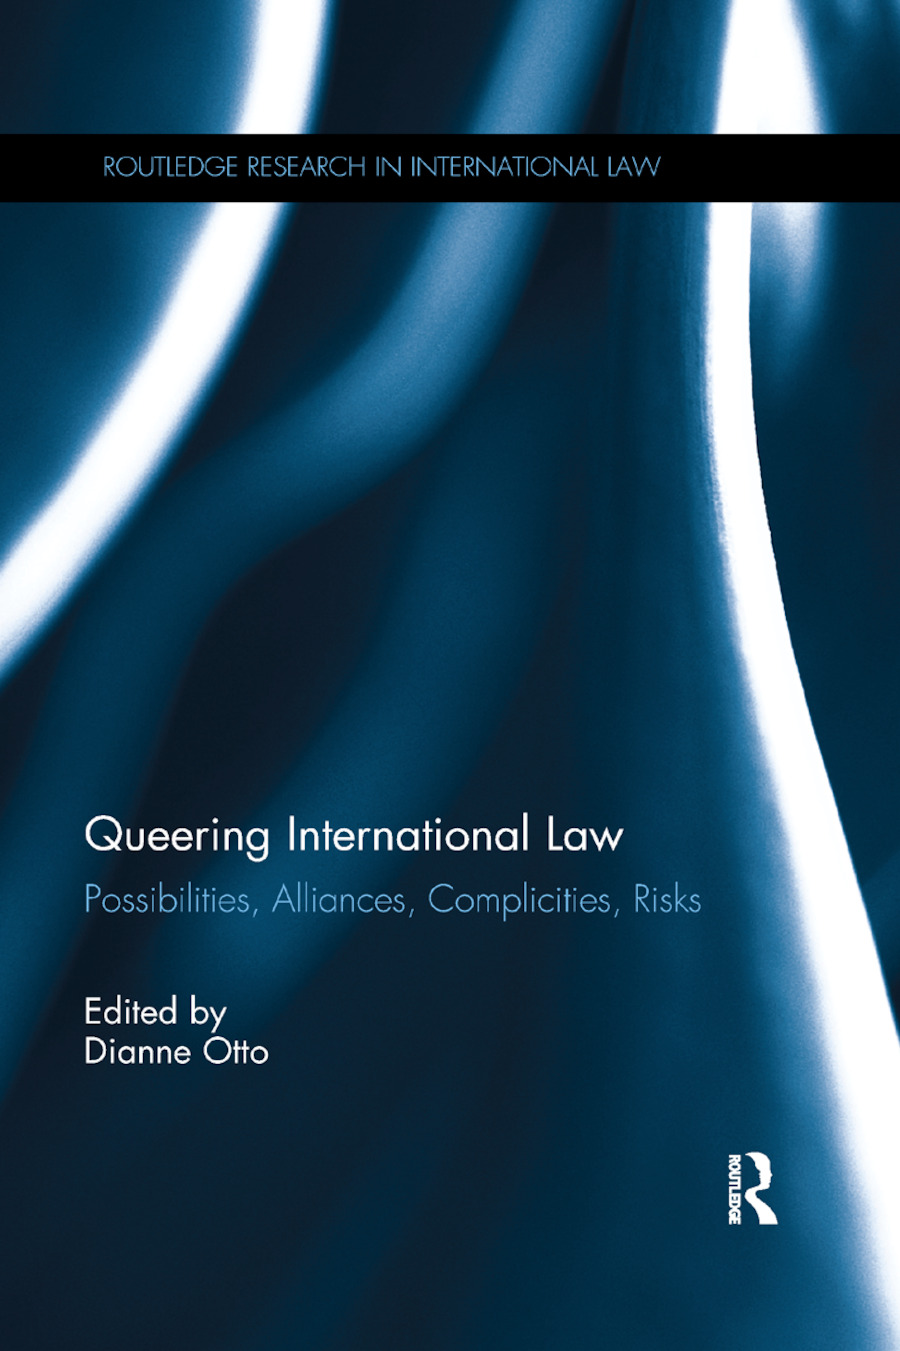 Queering International Law: Possibilities, Alliances, Complicities, Risks book cover